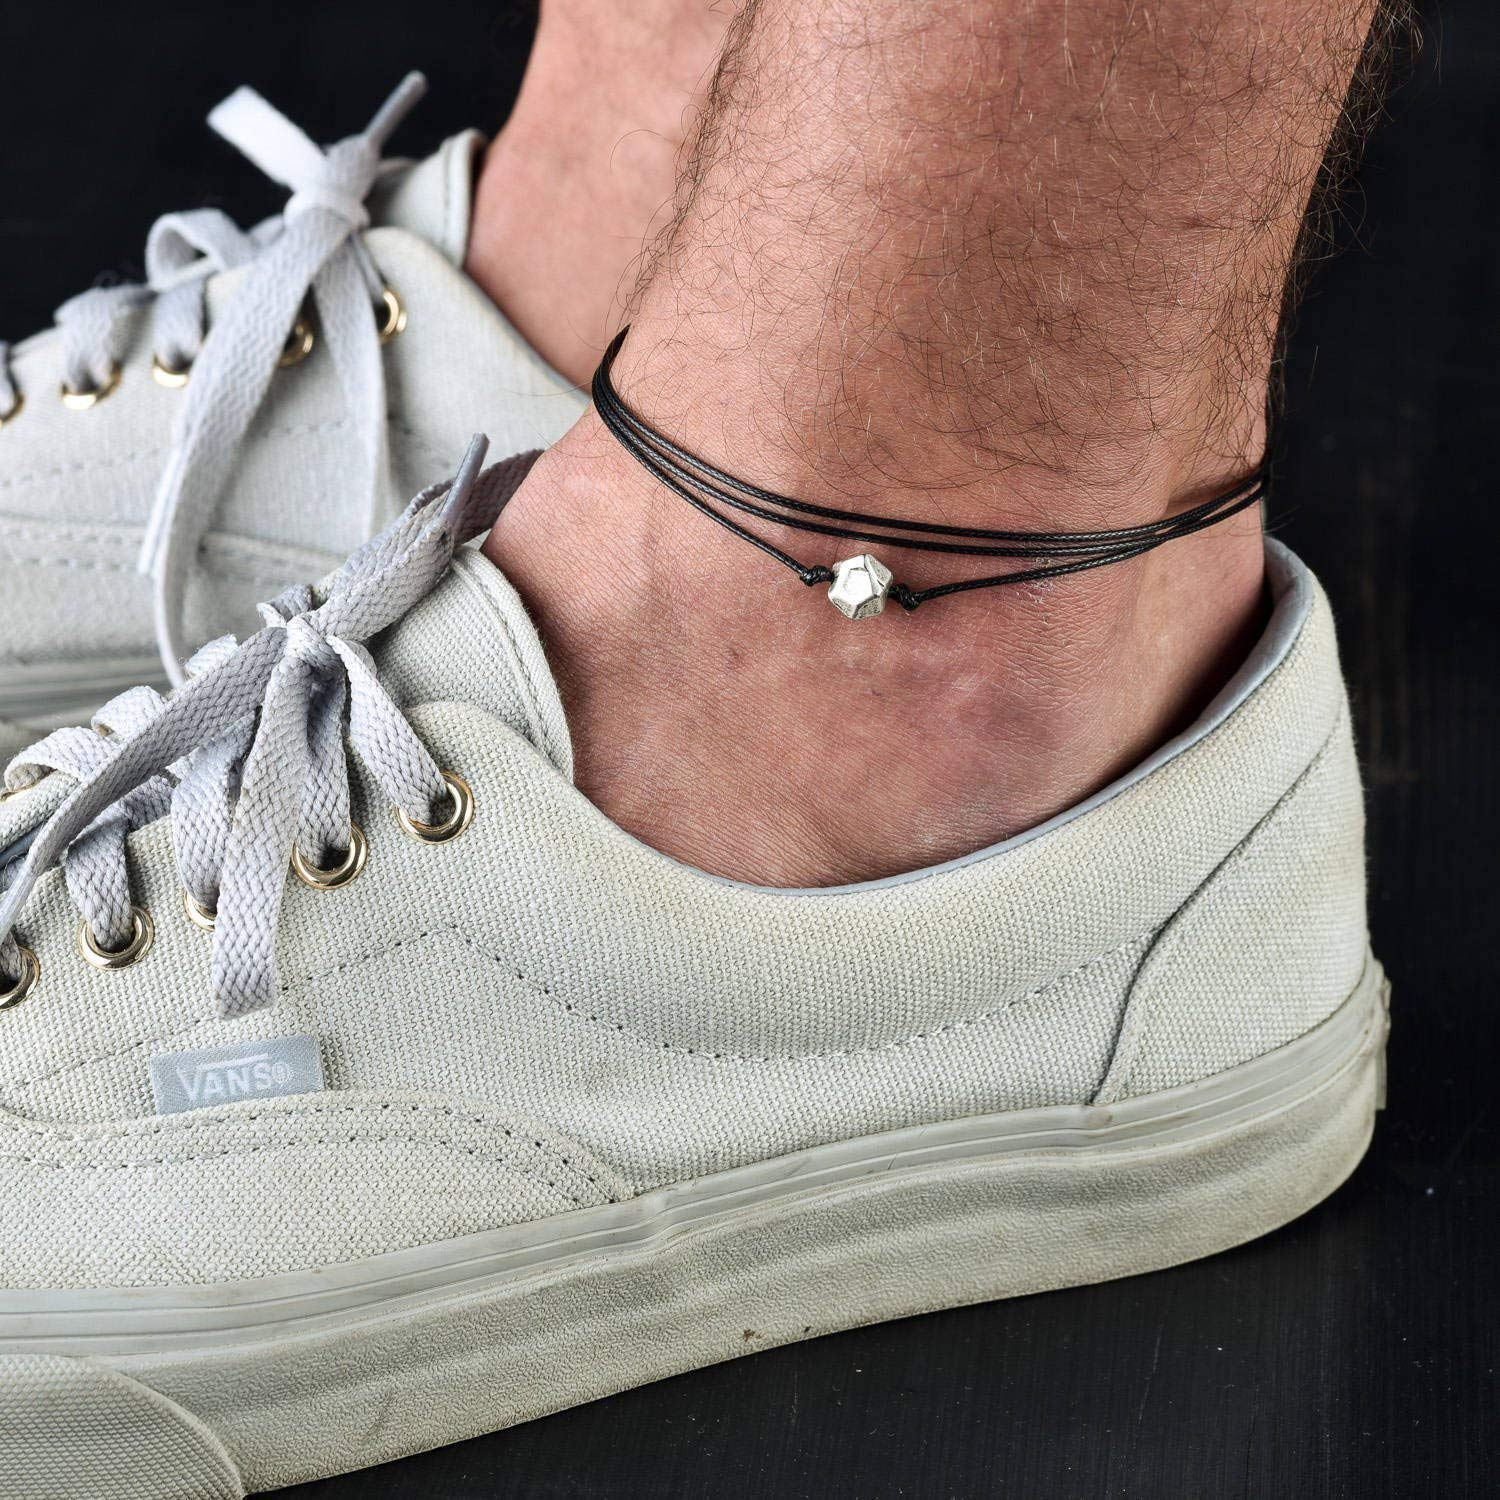 Handmade Black Anklet For Men Set With Silver Plated Bead By Galis Jewelry - Ankle Bracelet For Men - Beaded Anklet For Men